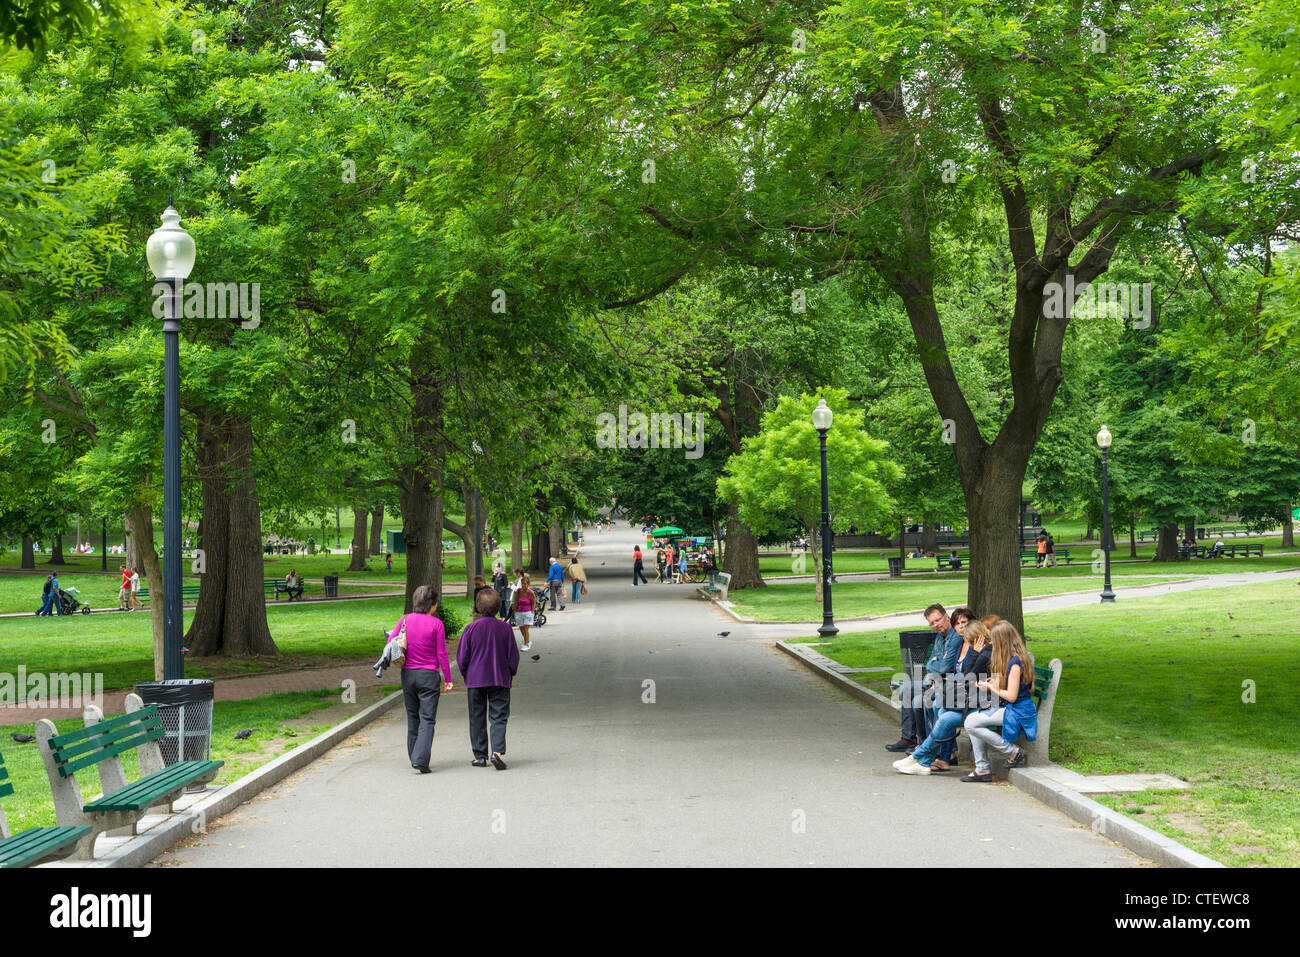 Boston Common, Boston, Massachusetts, EE.UU. Imagen De Stock